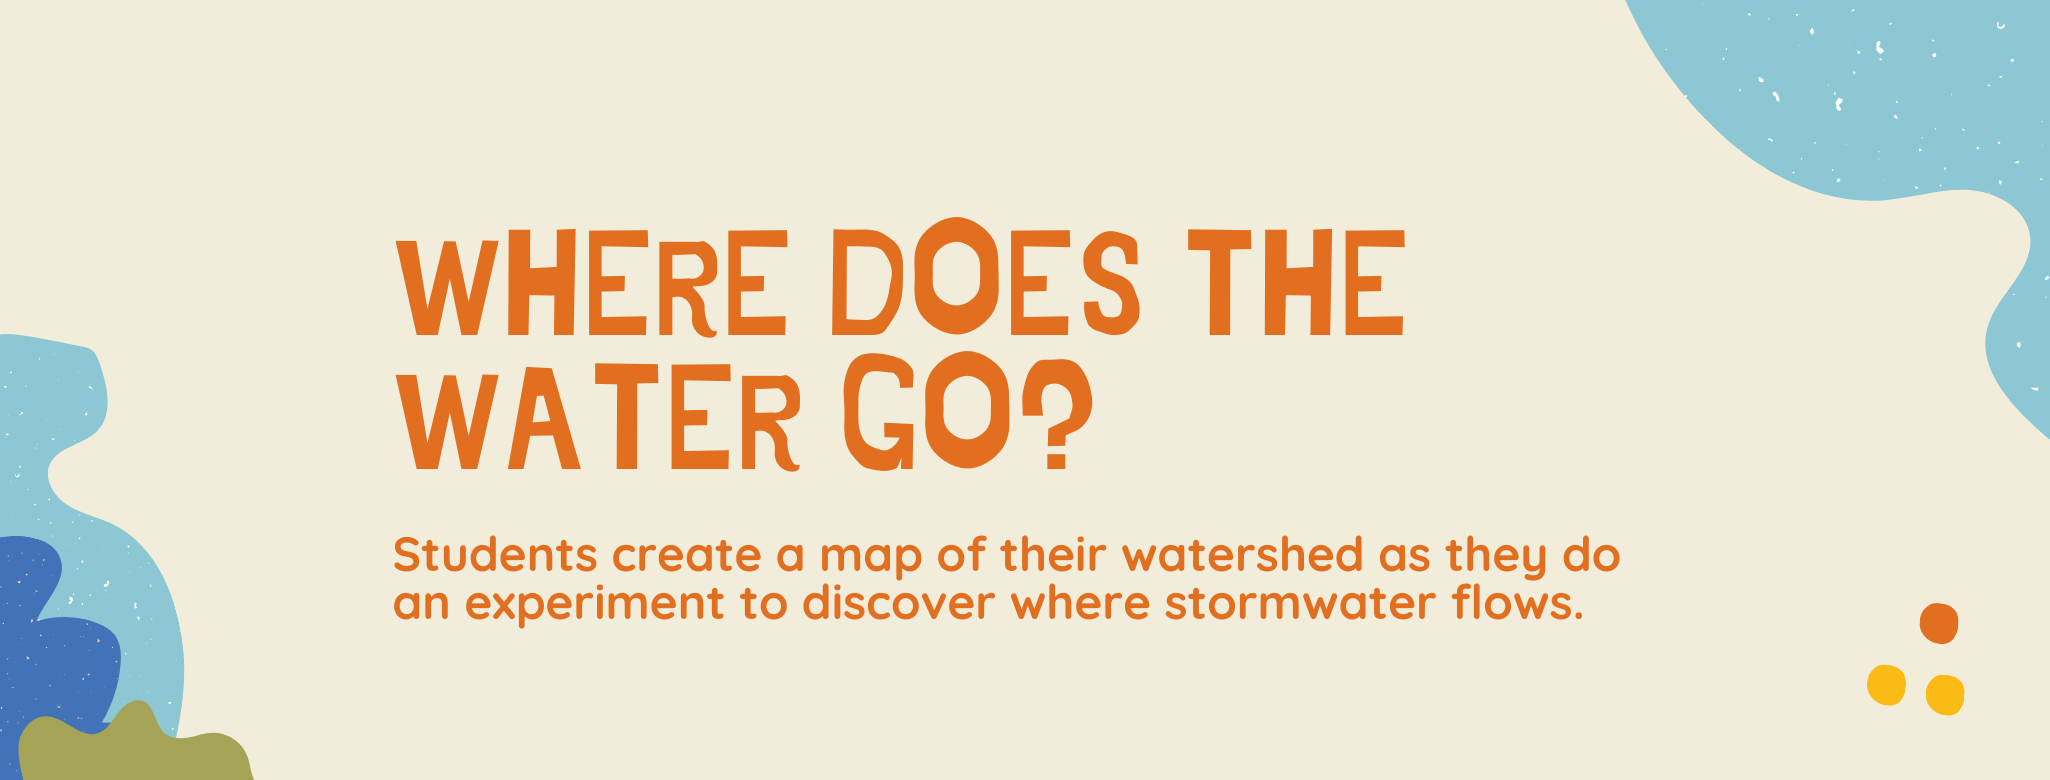 Where Does the Water Go?